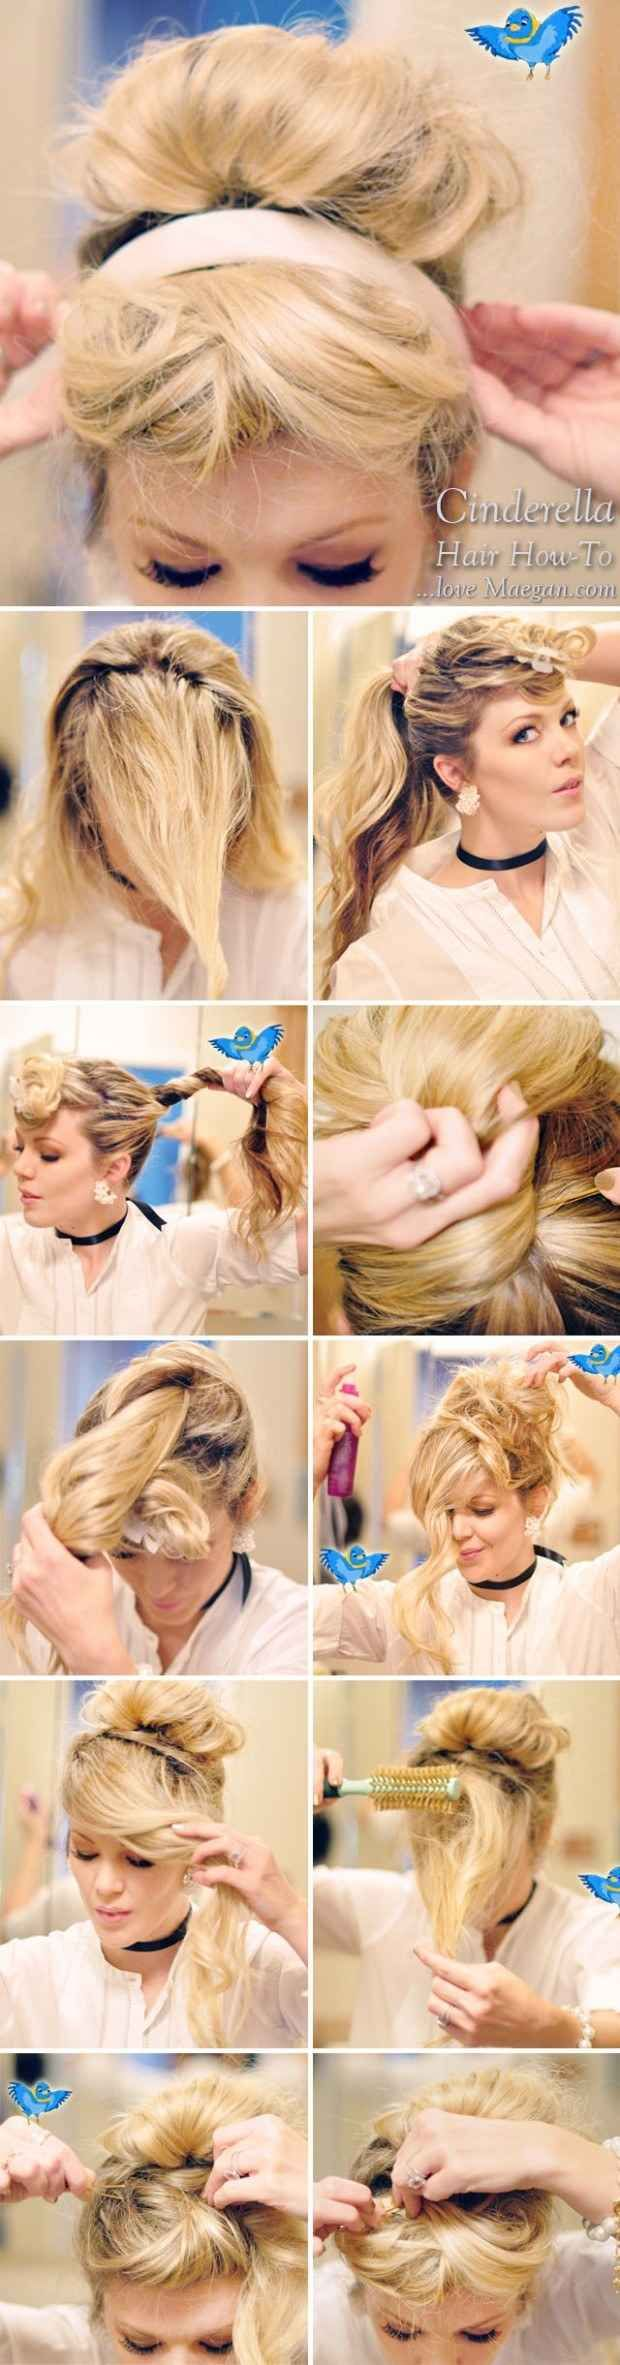 best 25+ princess hair ideas on pinterest | princess hairstyles